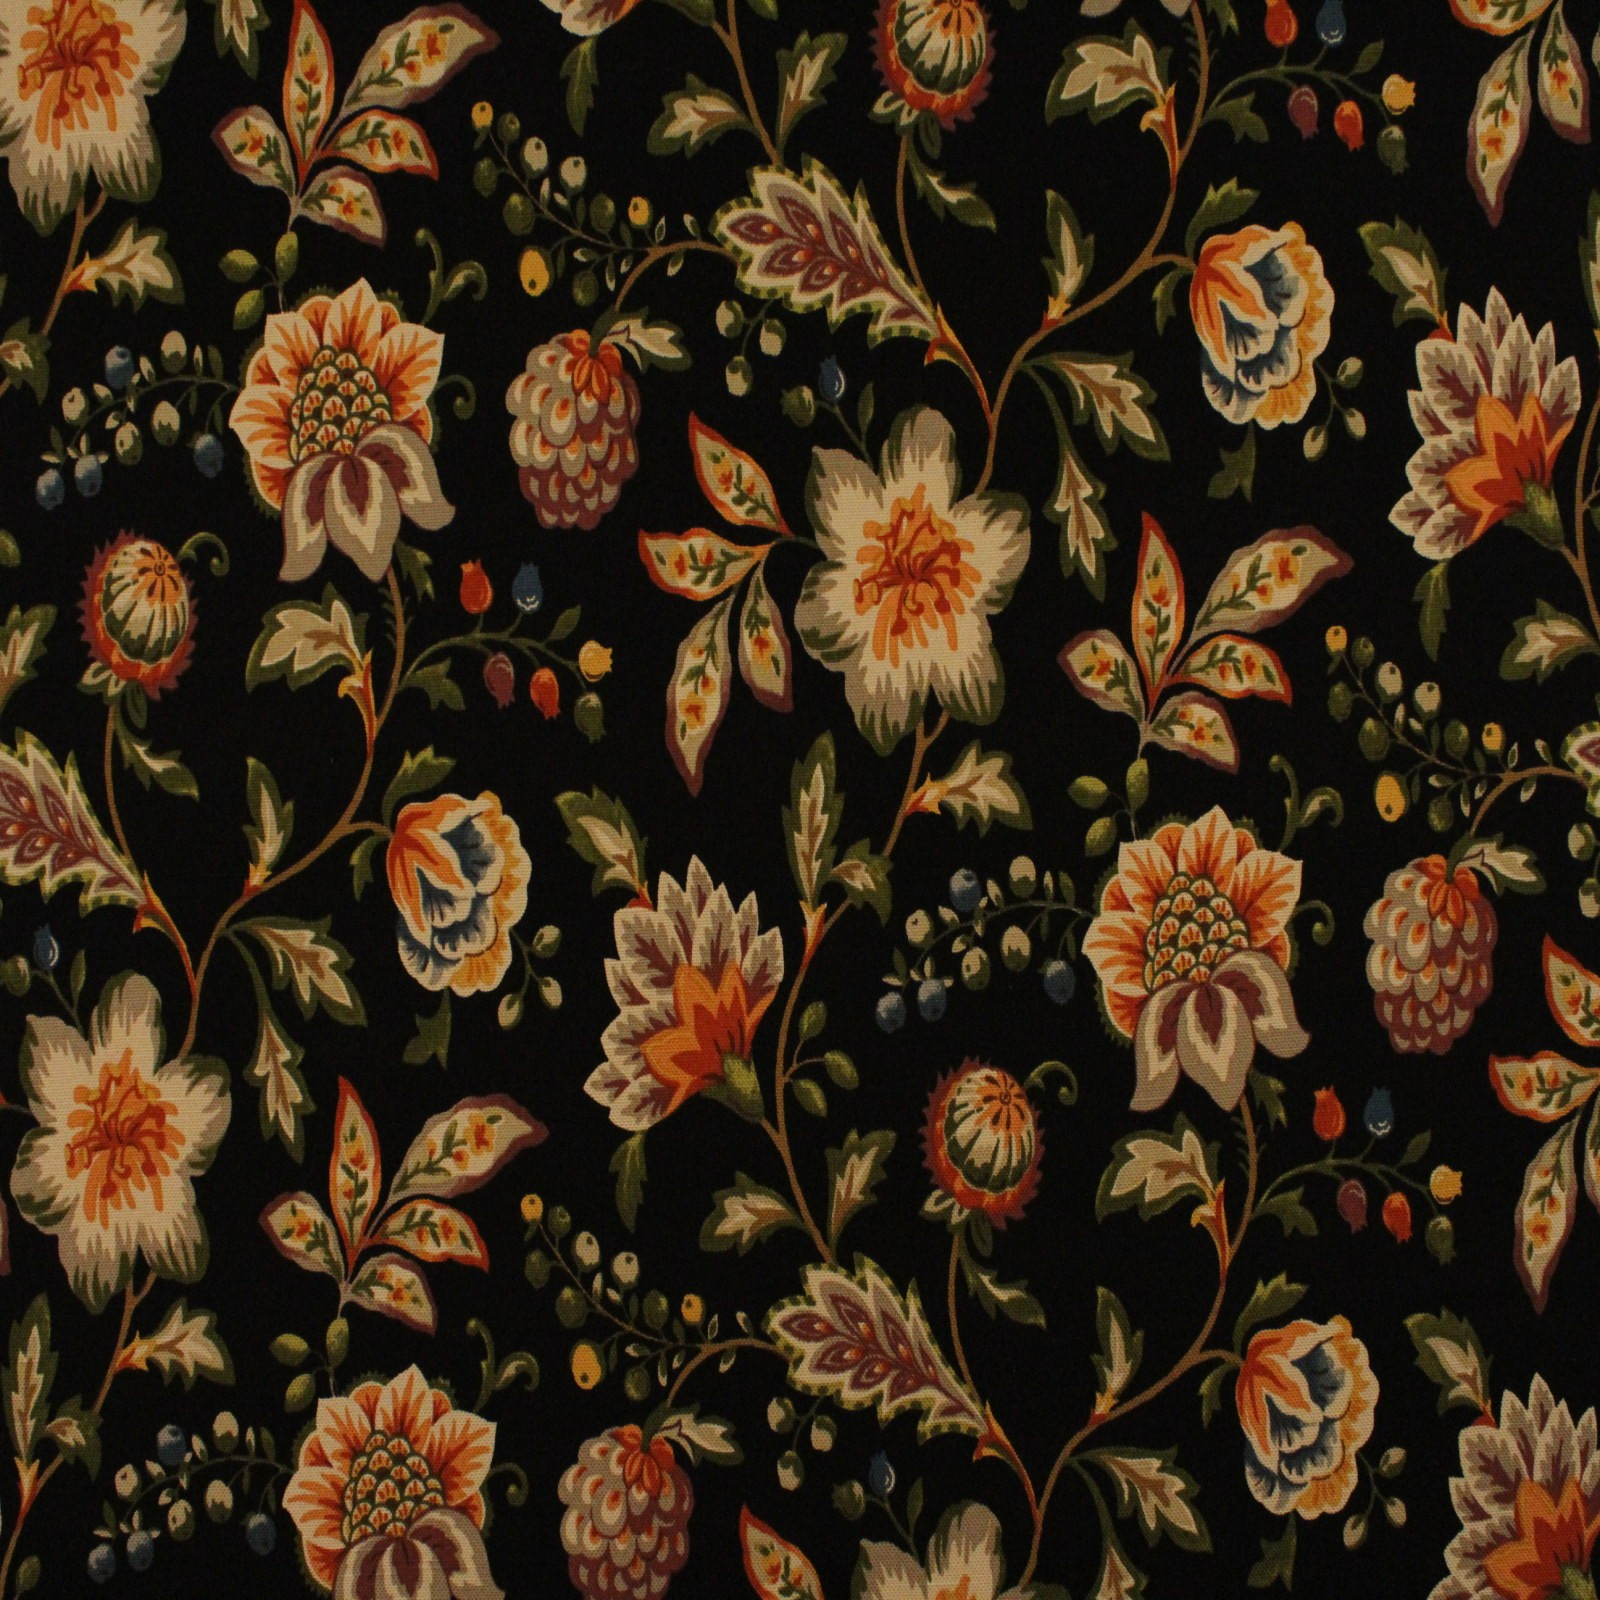 Onyx Black Floral Print Upholstery Fabric